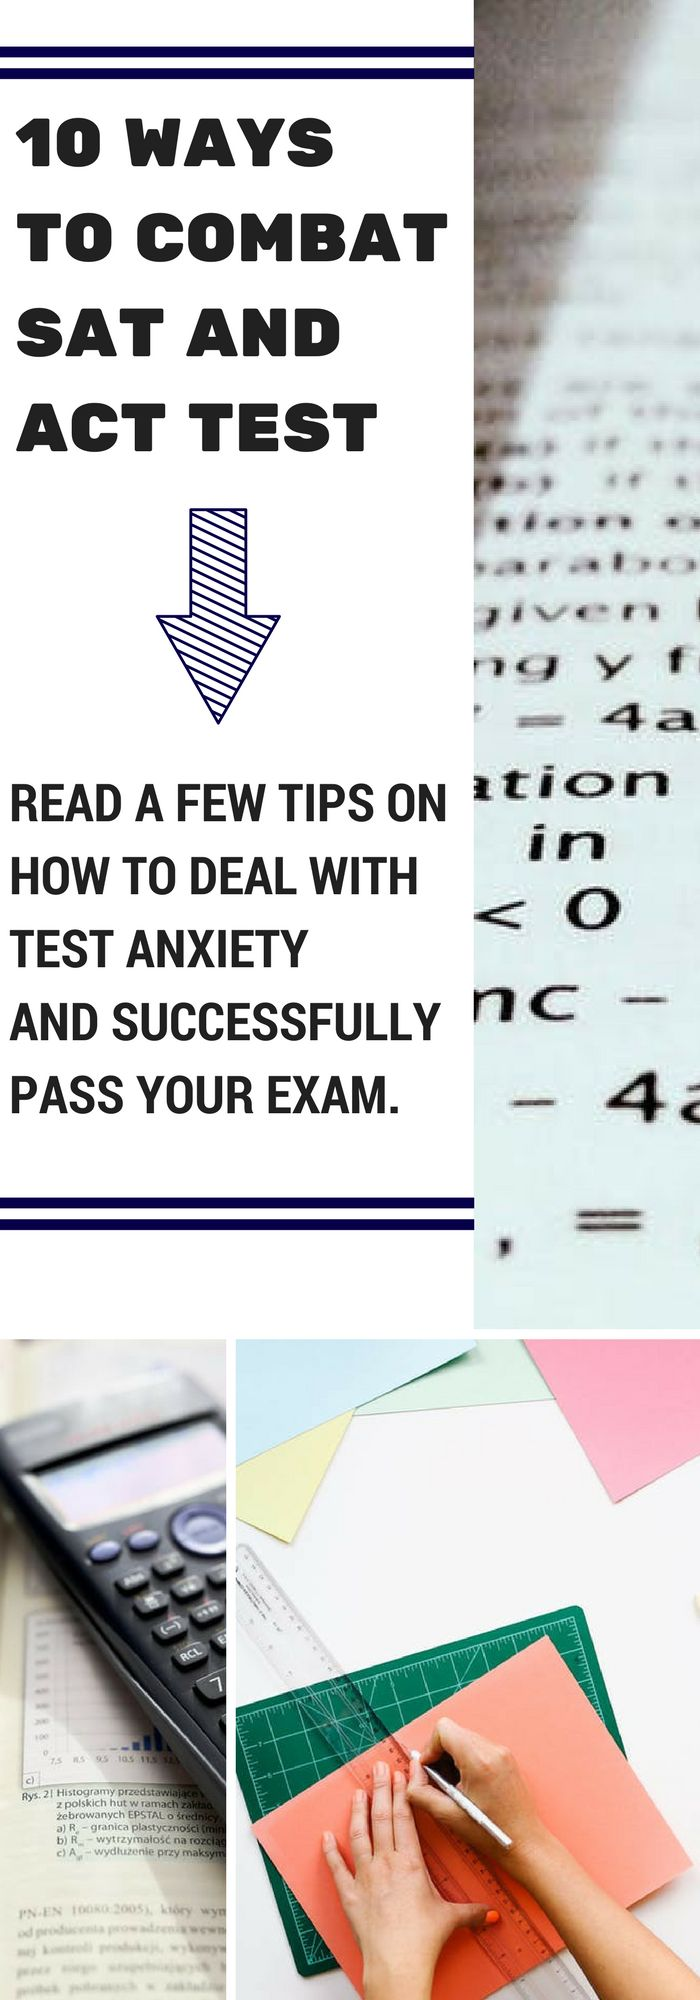 Many people experience test anxiety at least once or twice during their time in college. Even students with excellent grades can feel a lot of pressure just because of all the time spent thinking about taking the ACT and SAT. However, it doesn't have to be all that intimidating – a few tips on how to deal with test anxiety can help you relax, concentrate and successfully pass your exam.